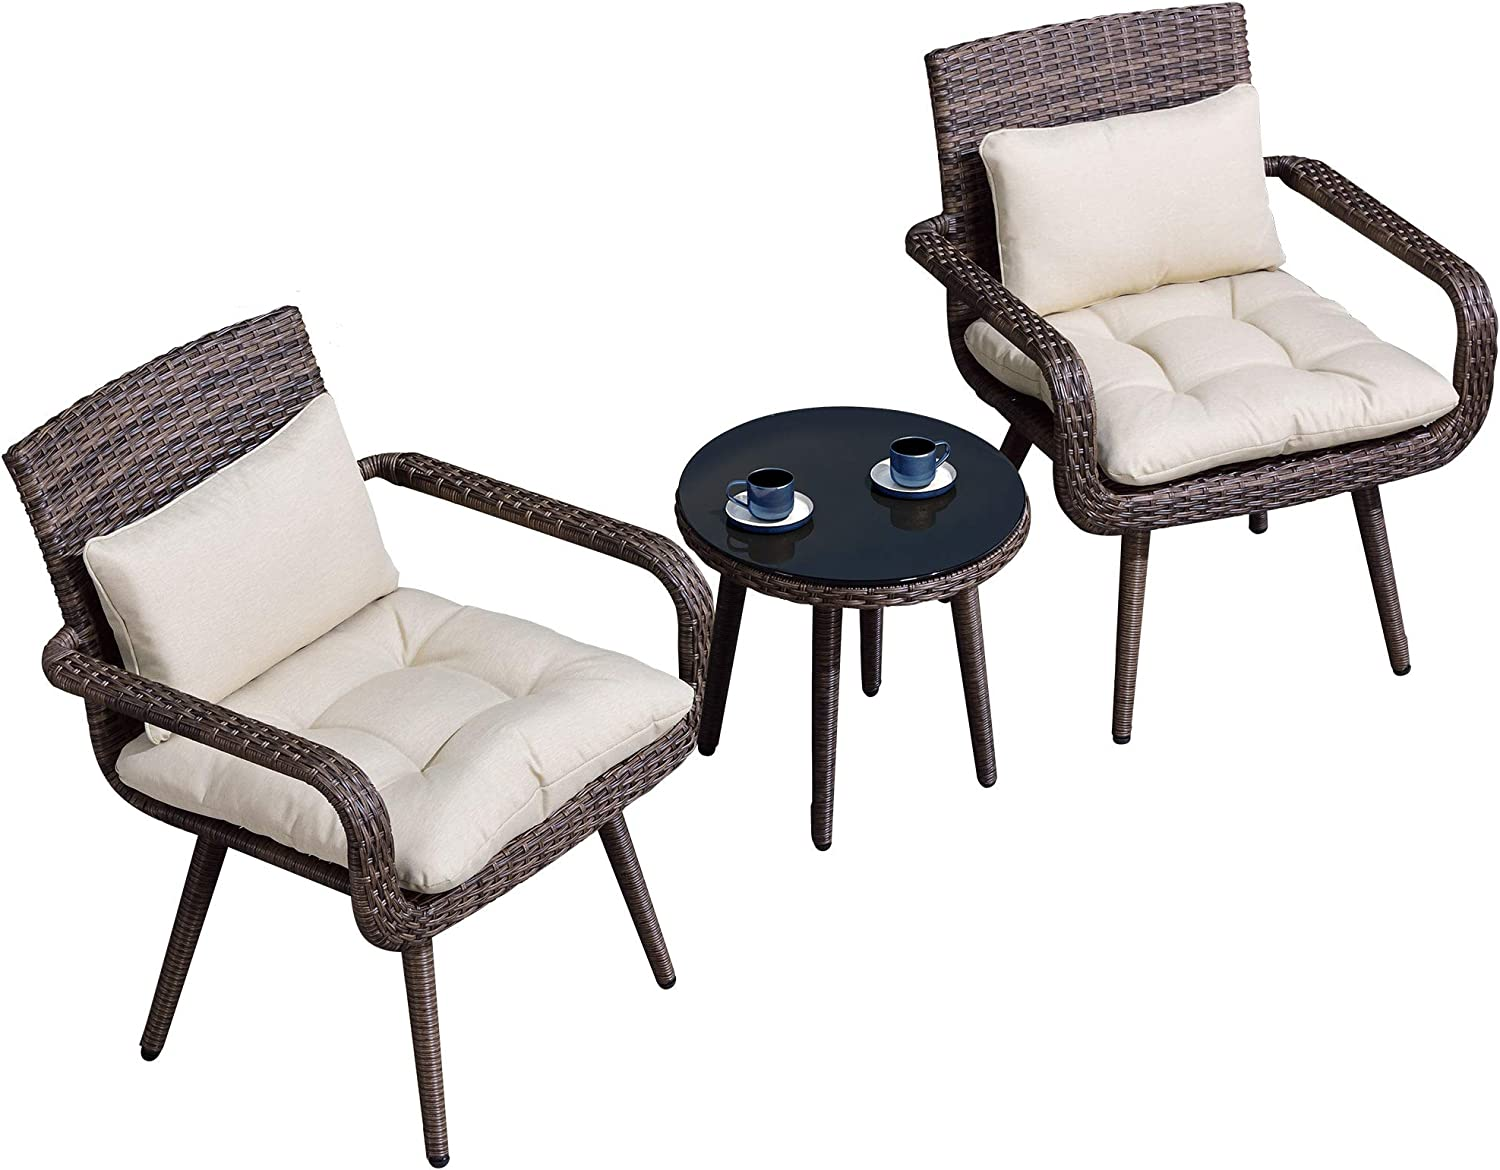 PURPLE LEAF Outdoor Patio Furniture Sets, 3 Piece Patio Set Outdoor Bistro Set, Patio Moden Wicker Chairs and Tempered Glass Side Table